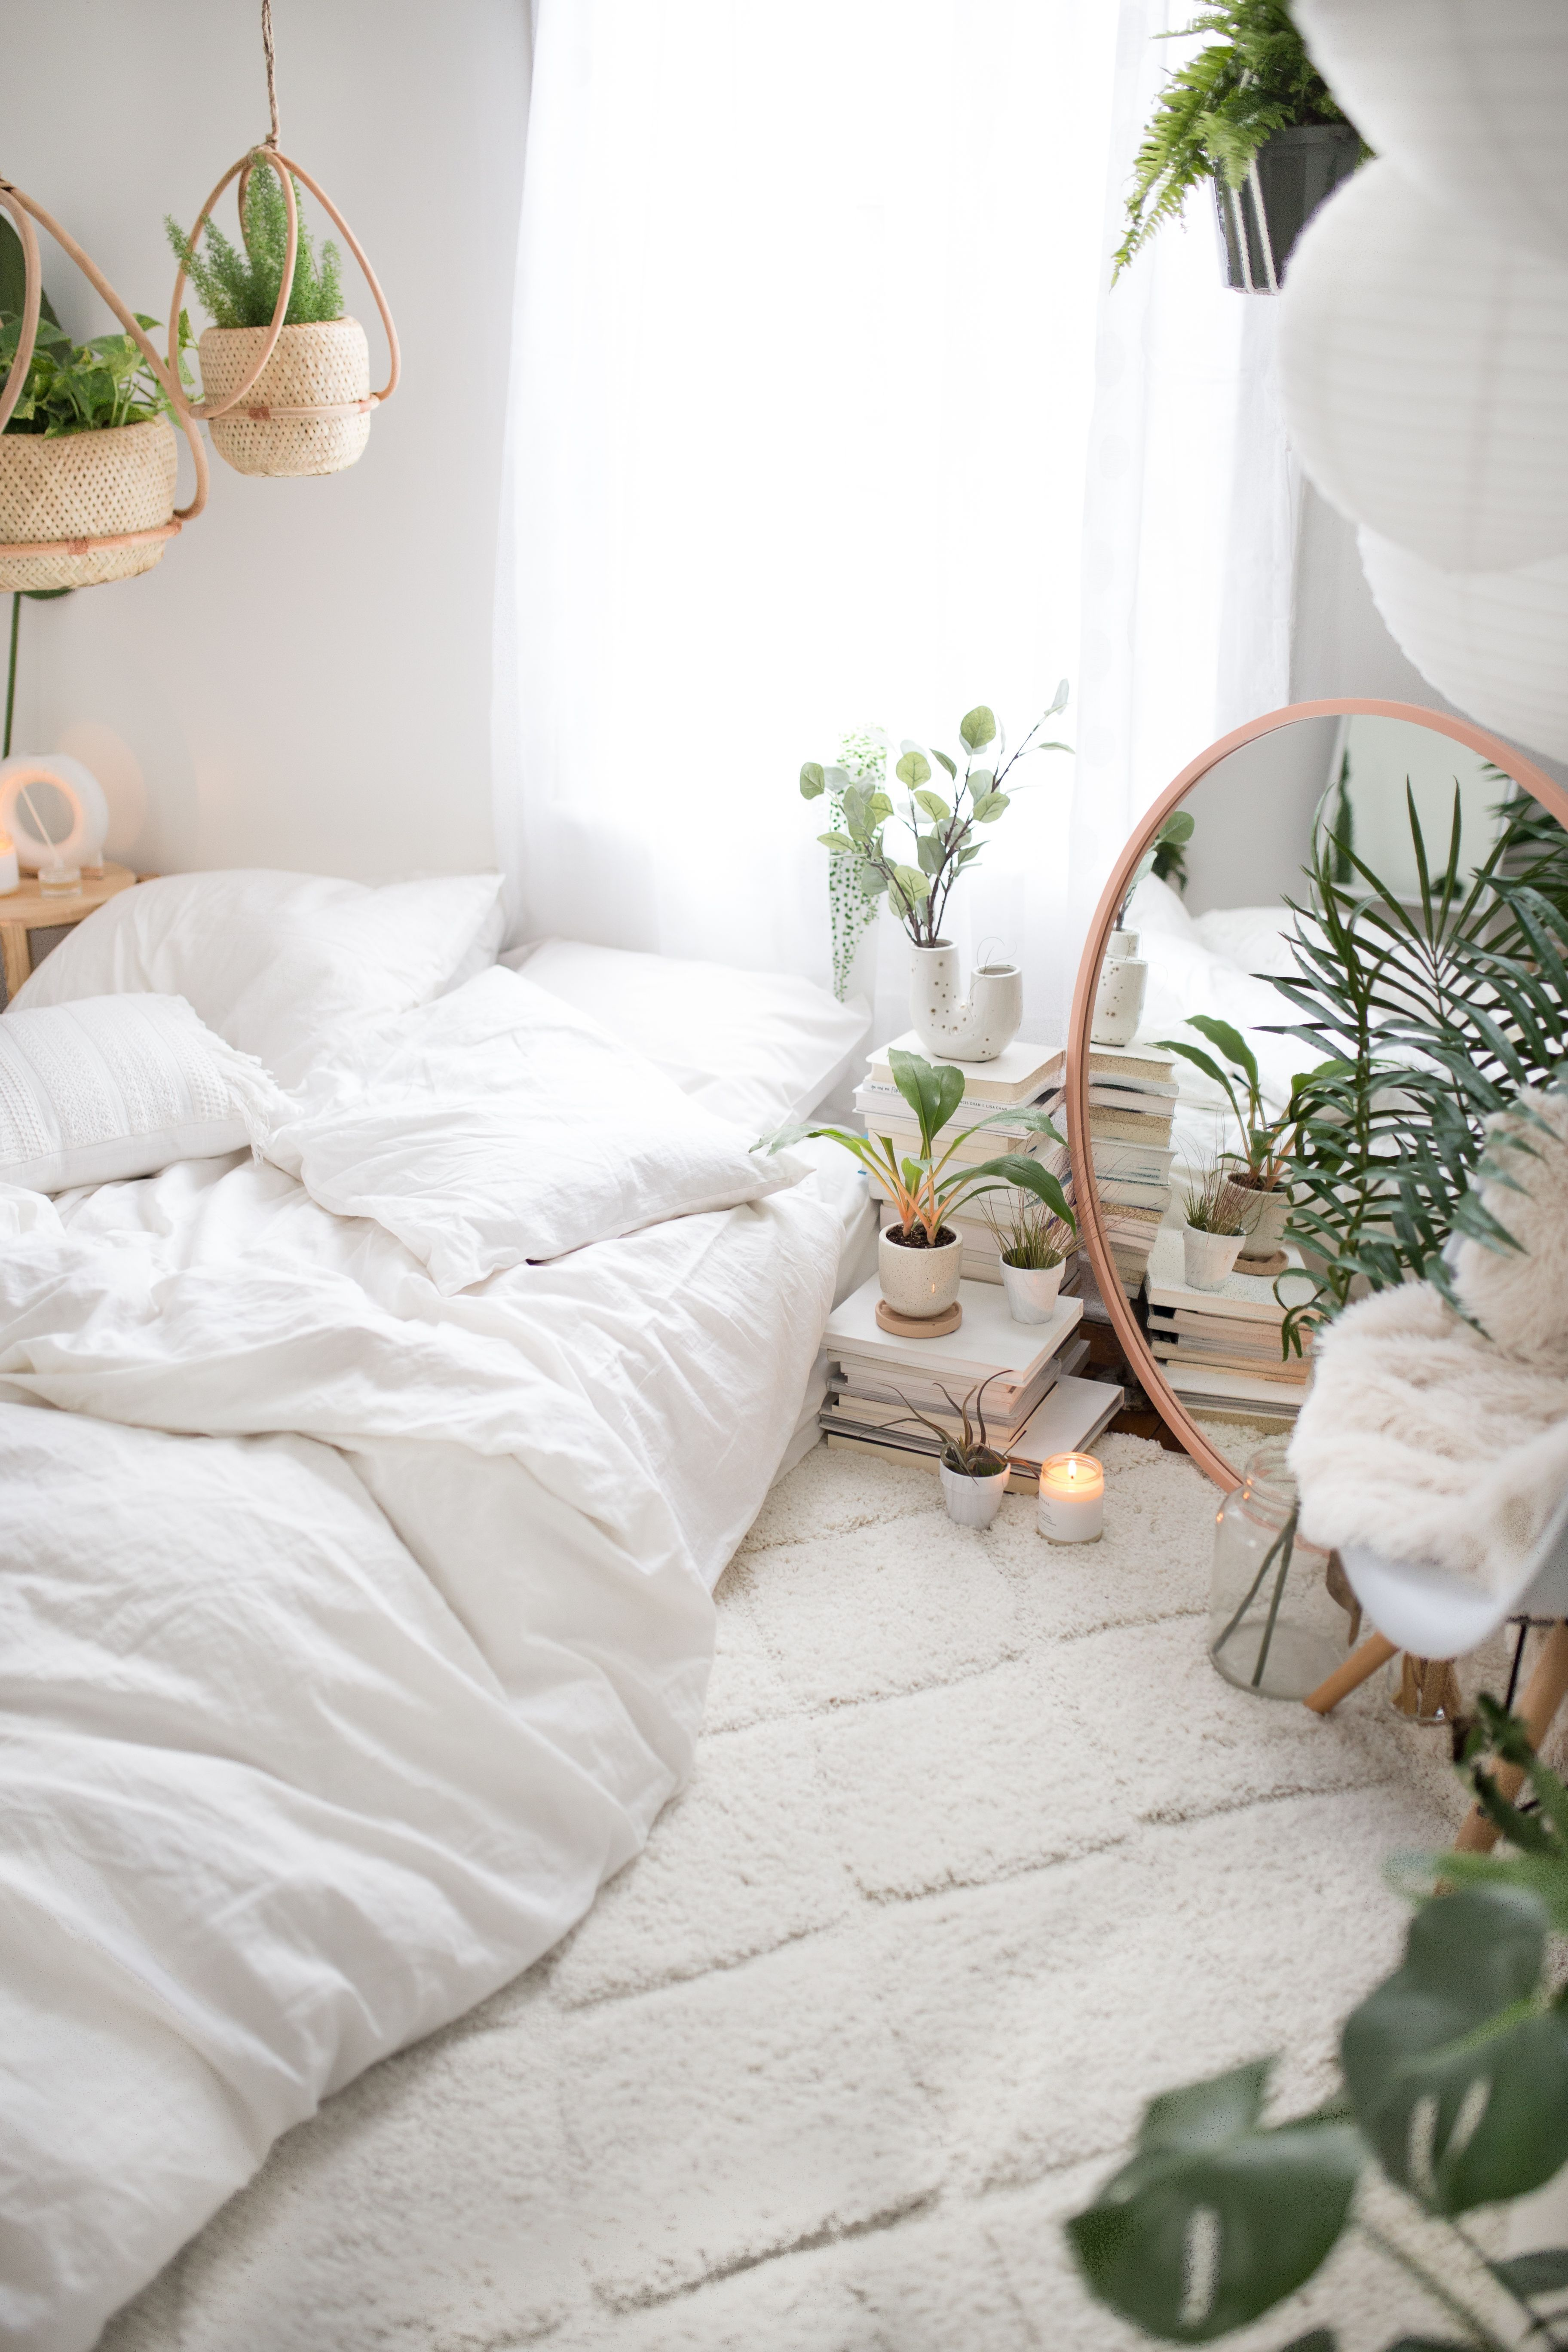 zen bedroom plants mattress on floor interiors pinterest